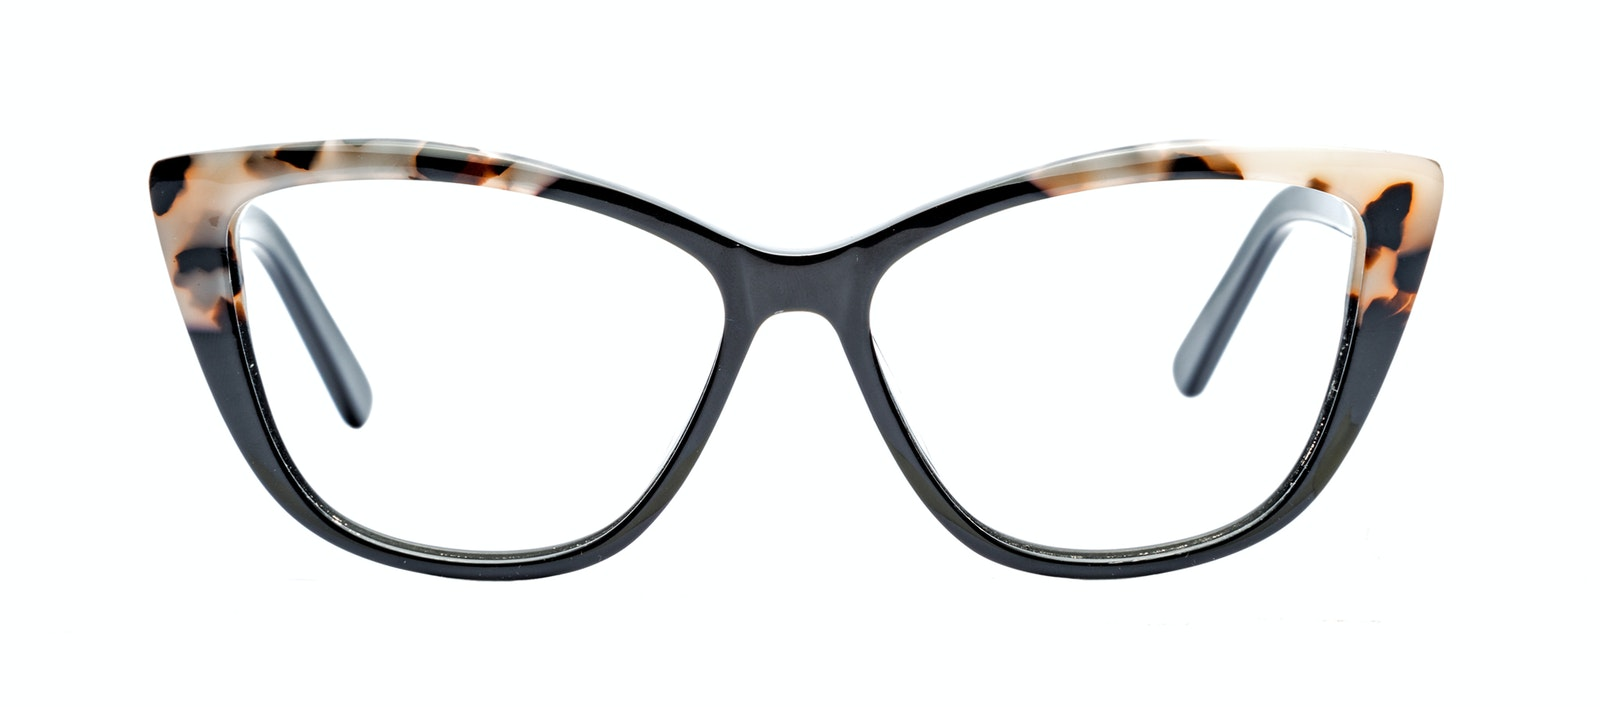 f1a794ba6328 Affordable Fashion Glasses Cat Eye Daring Cateye Eyeglasses Women Dolled Up  Ebony Granite Front